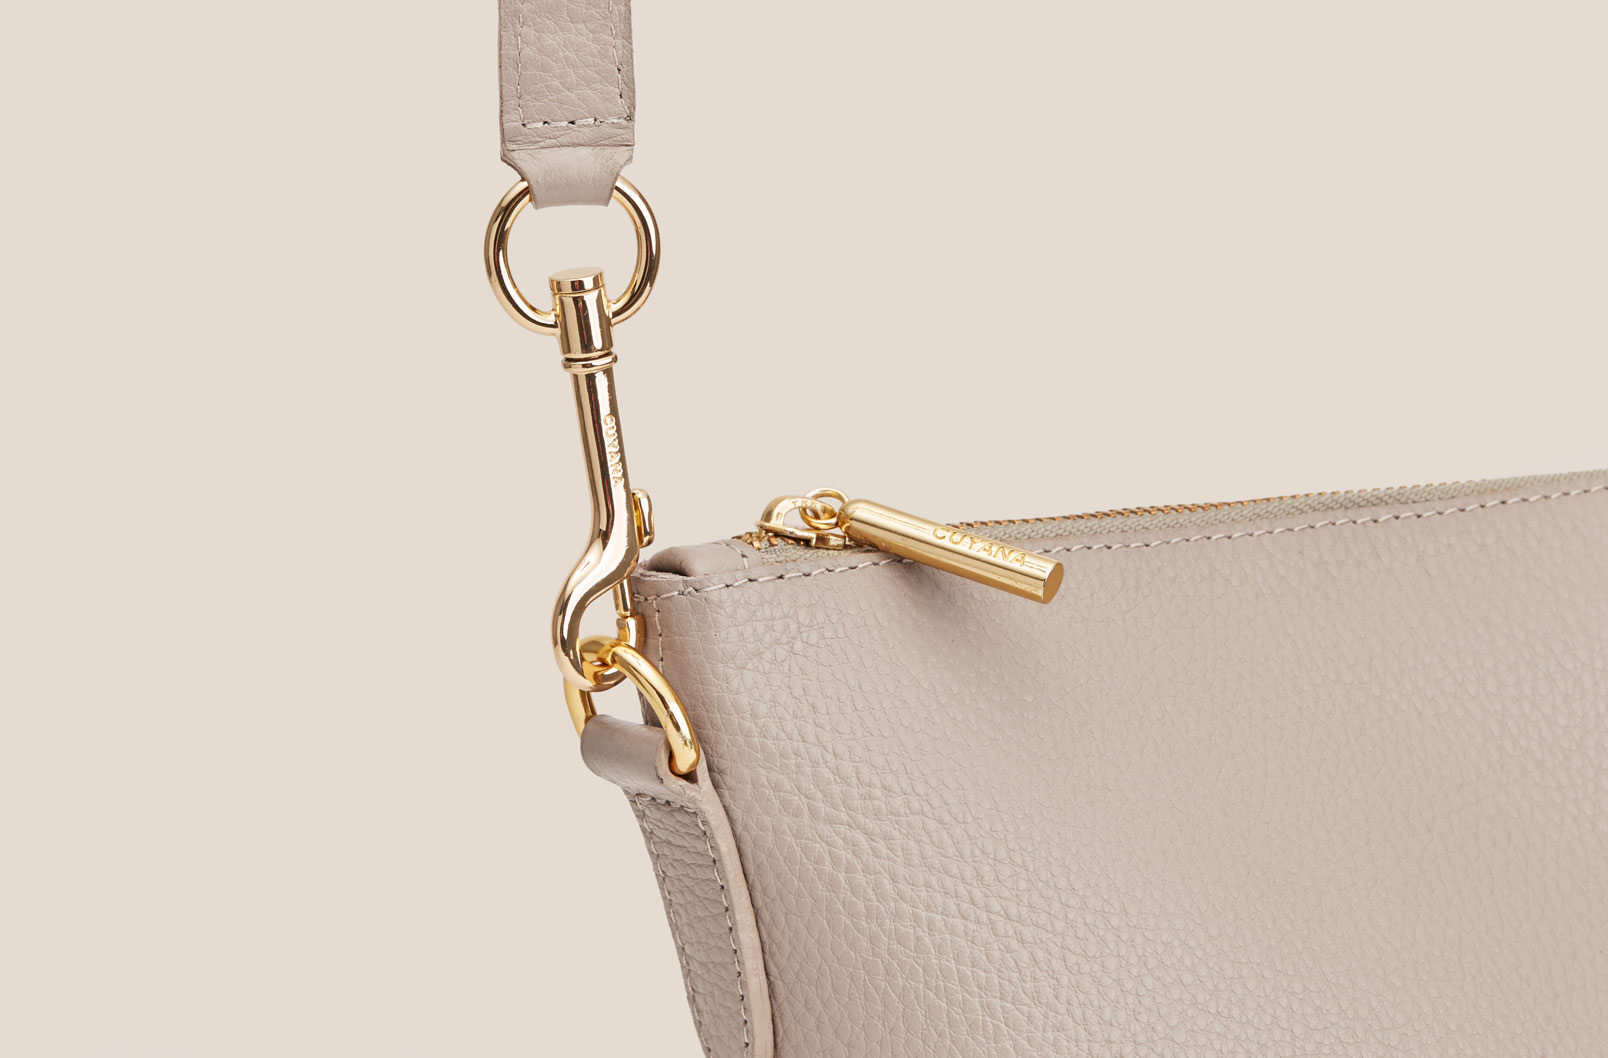 Detail shot showing Oversized Carryall strap and d-ring